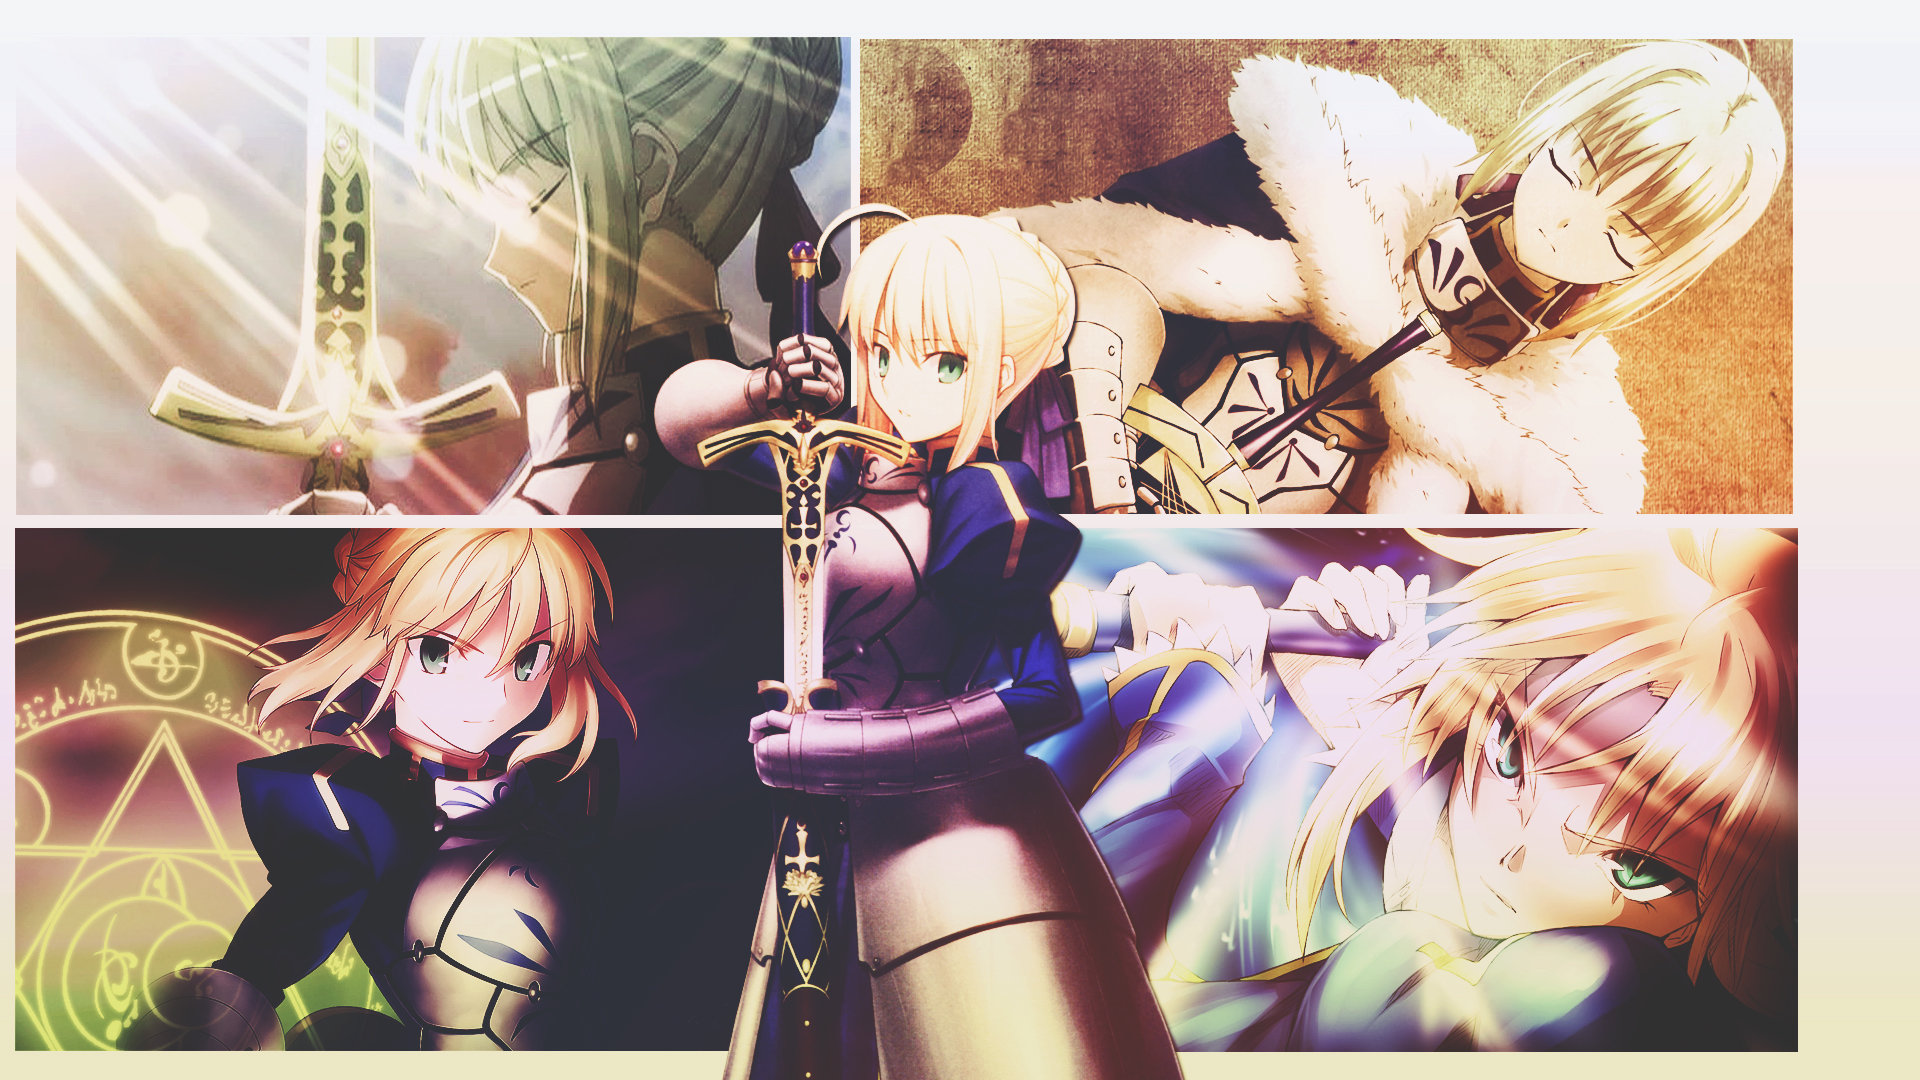 Download full hd 1080p Saber (Fate Series) PC background ID:468510 for free